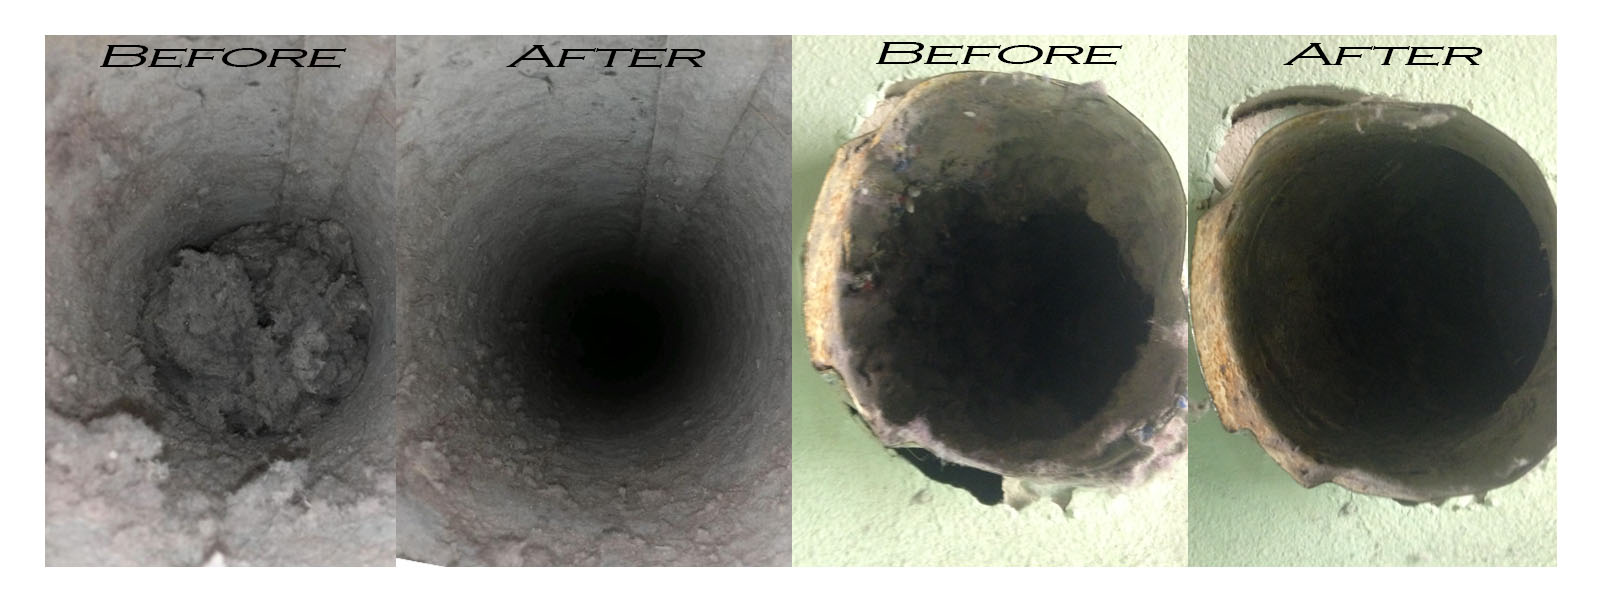 Dryer Vent Safety